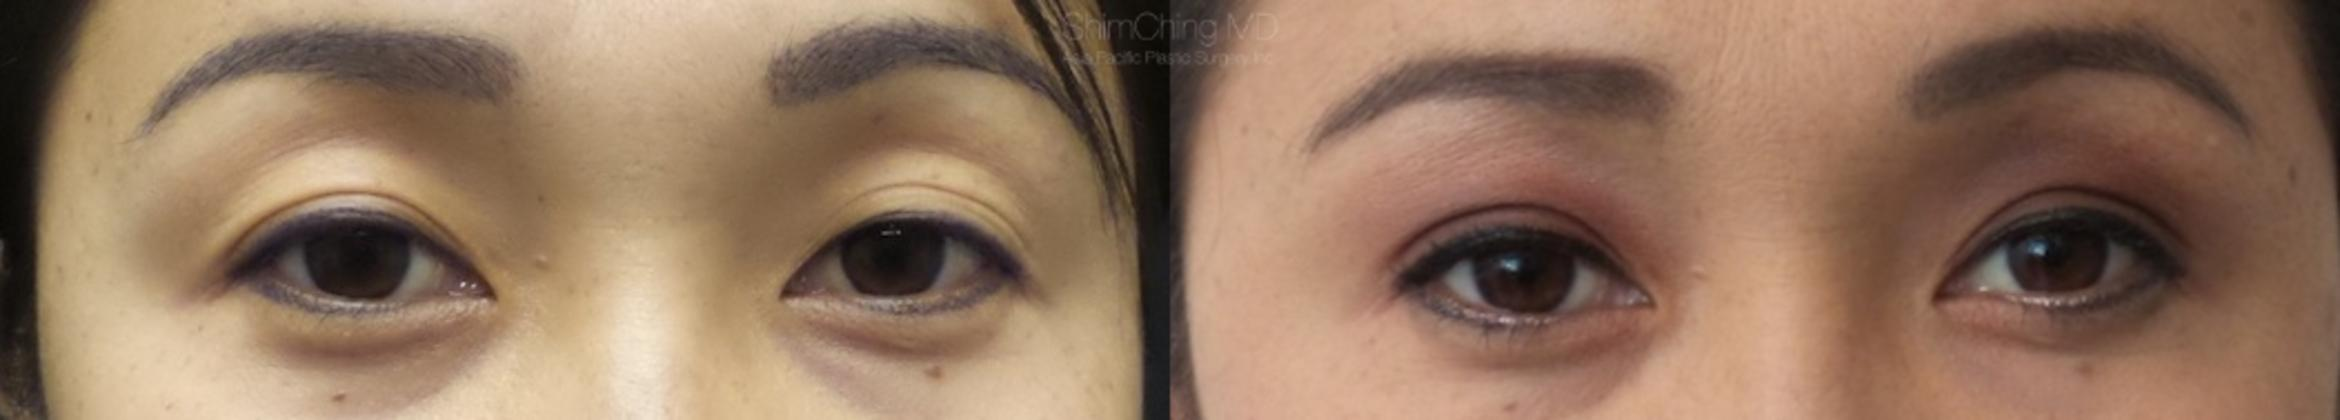 Asian Eyelid Case 13 Before & After View #1 | Honolulu, HI | Shim Ching, MD: Asia Pacific Plastic Surgery